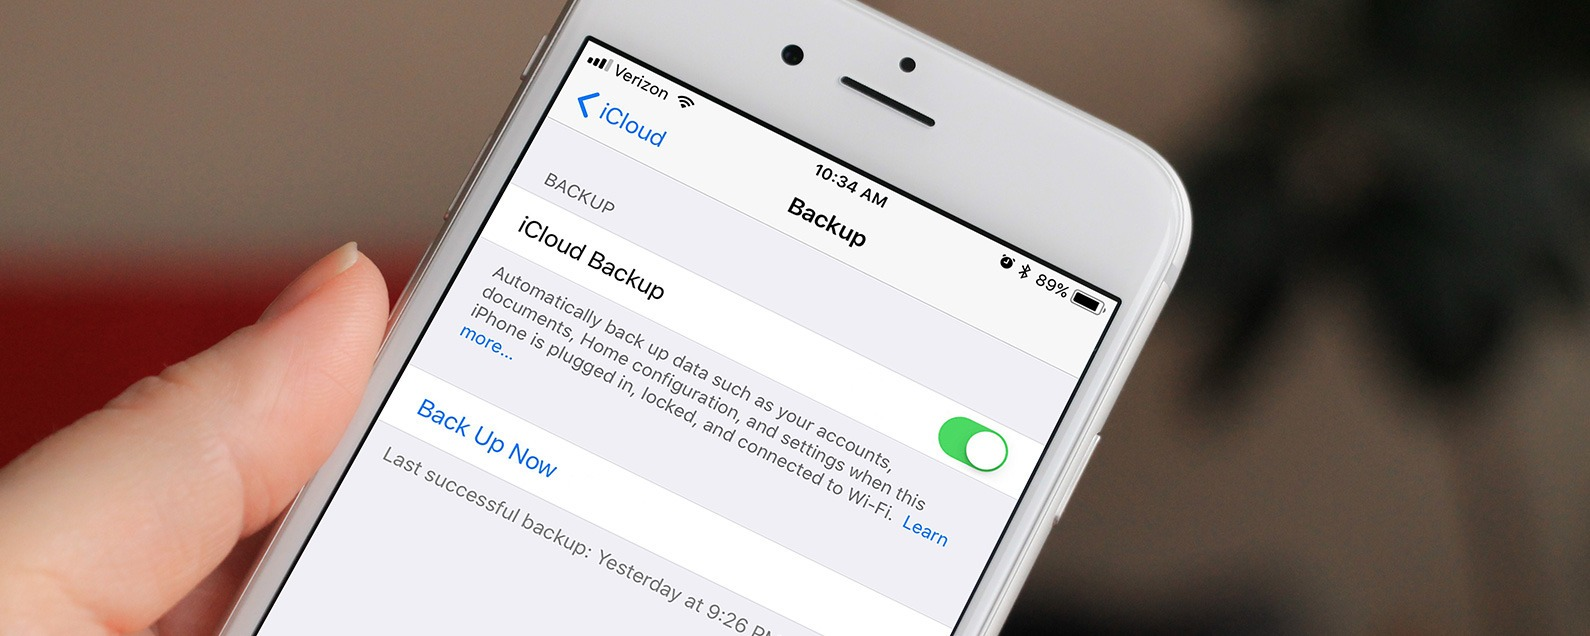 how to back up your iphone to icloud iphonelife com